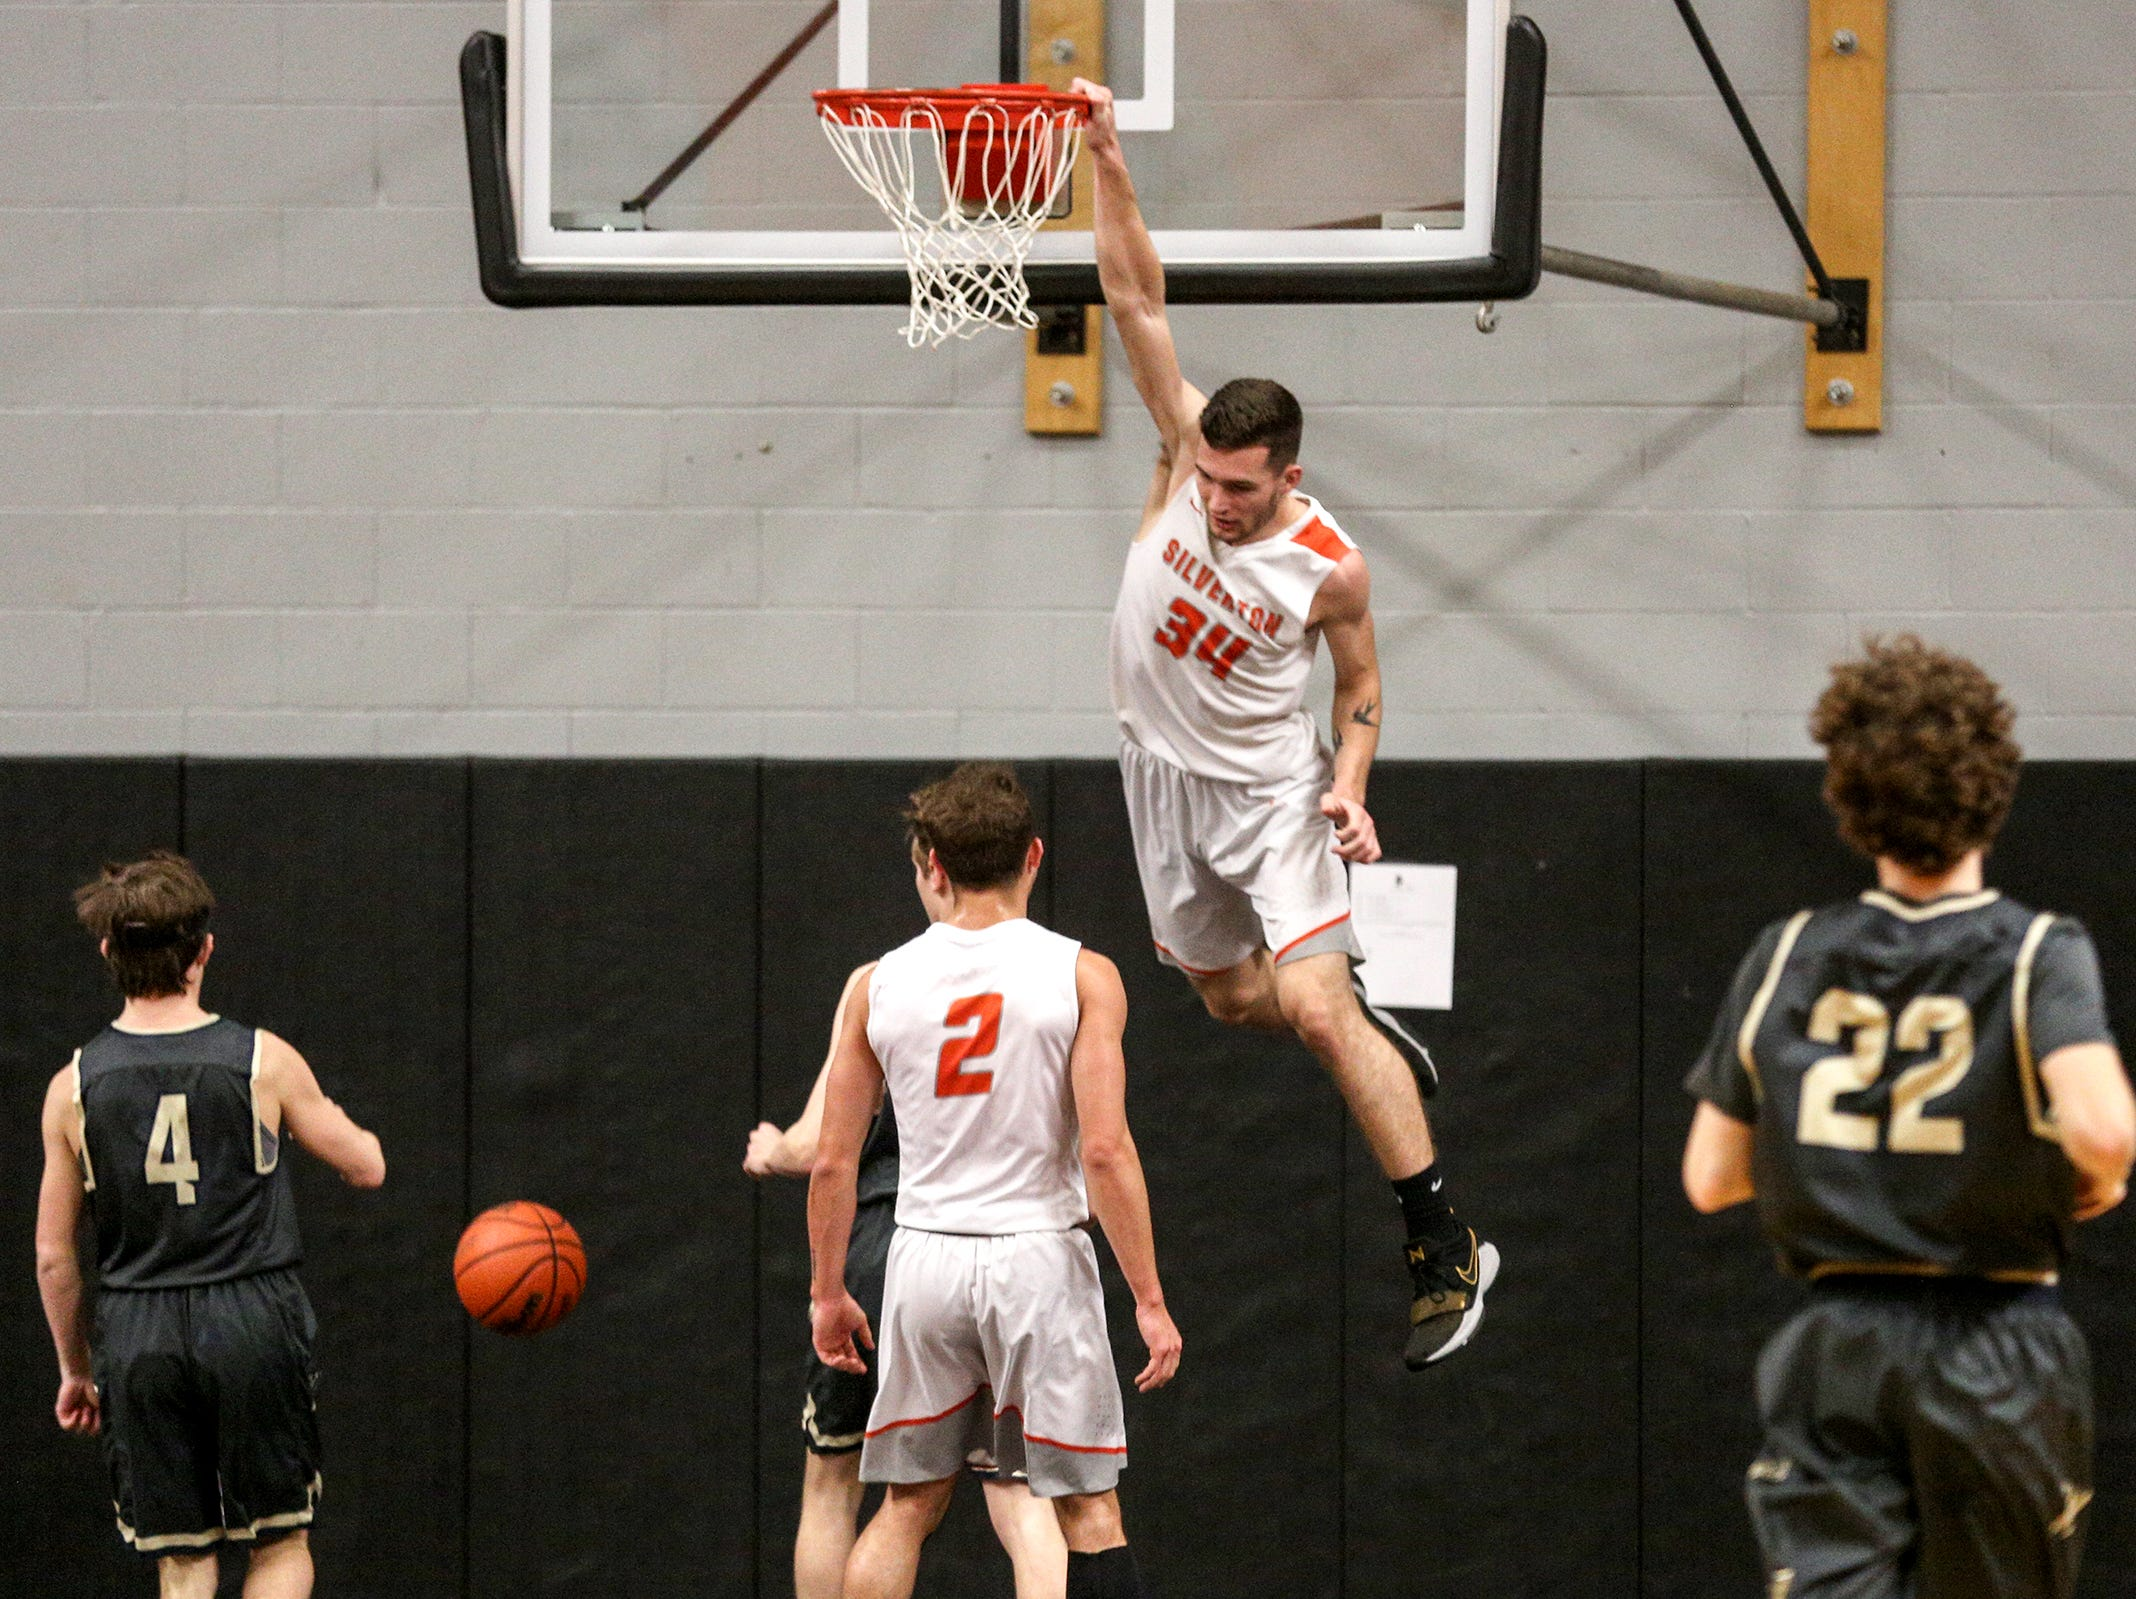 Silverton's Levi Nielsen (34) dunks during the West Albany vs. Silverton High School boys basketball game in Silverton on Friday, Jan. 25, 2019.